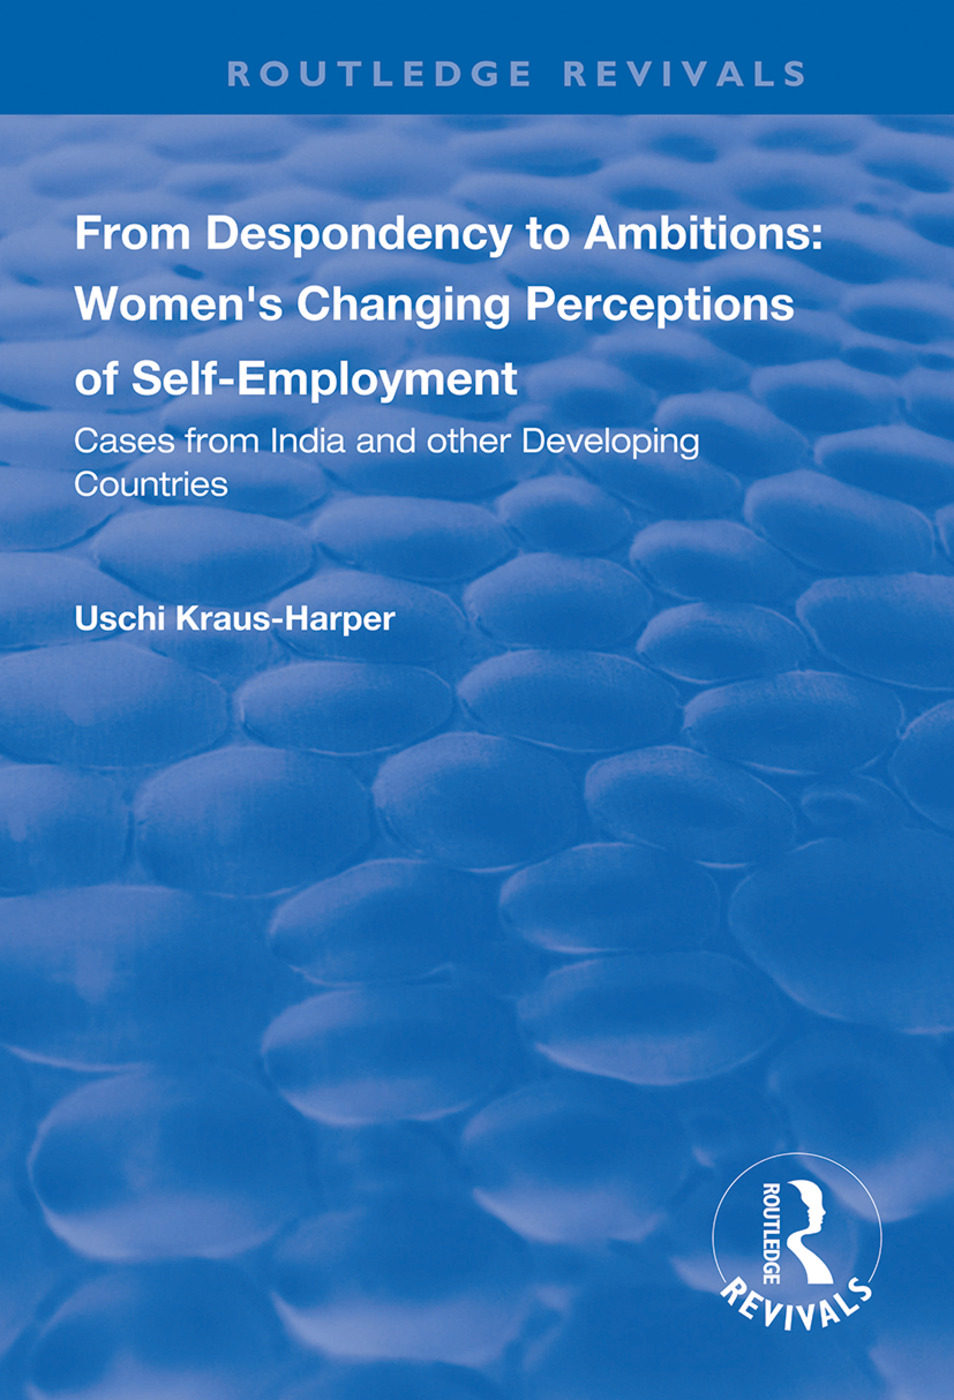 From Despondency to Ambitions: Women's Changing Perceptions of Self-Employment: Cases from India and Other Developing Countries book cover